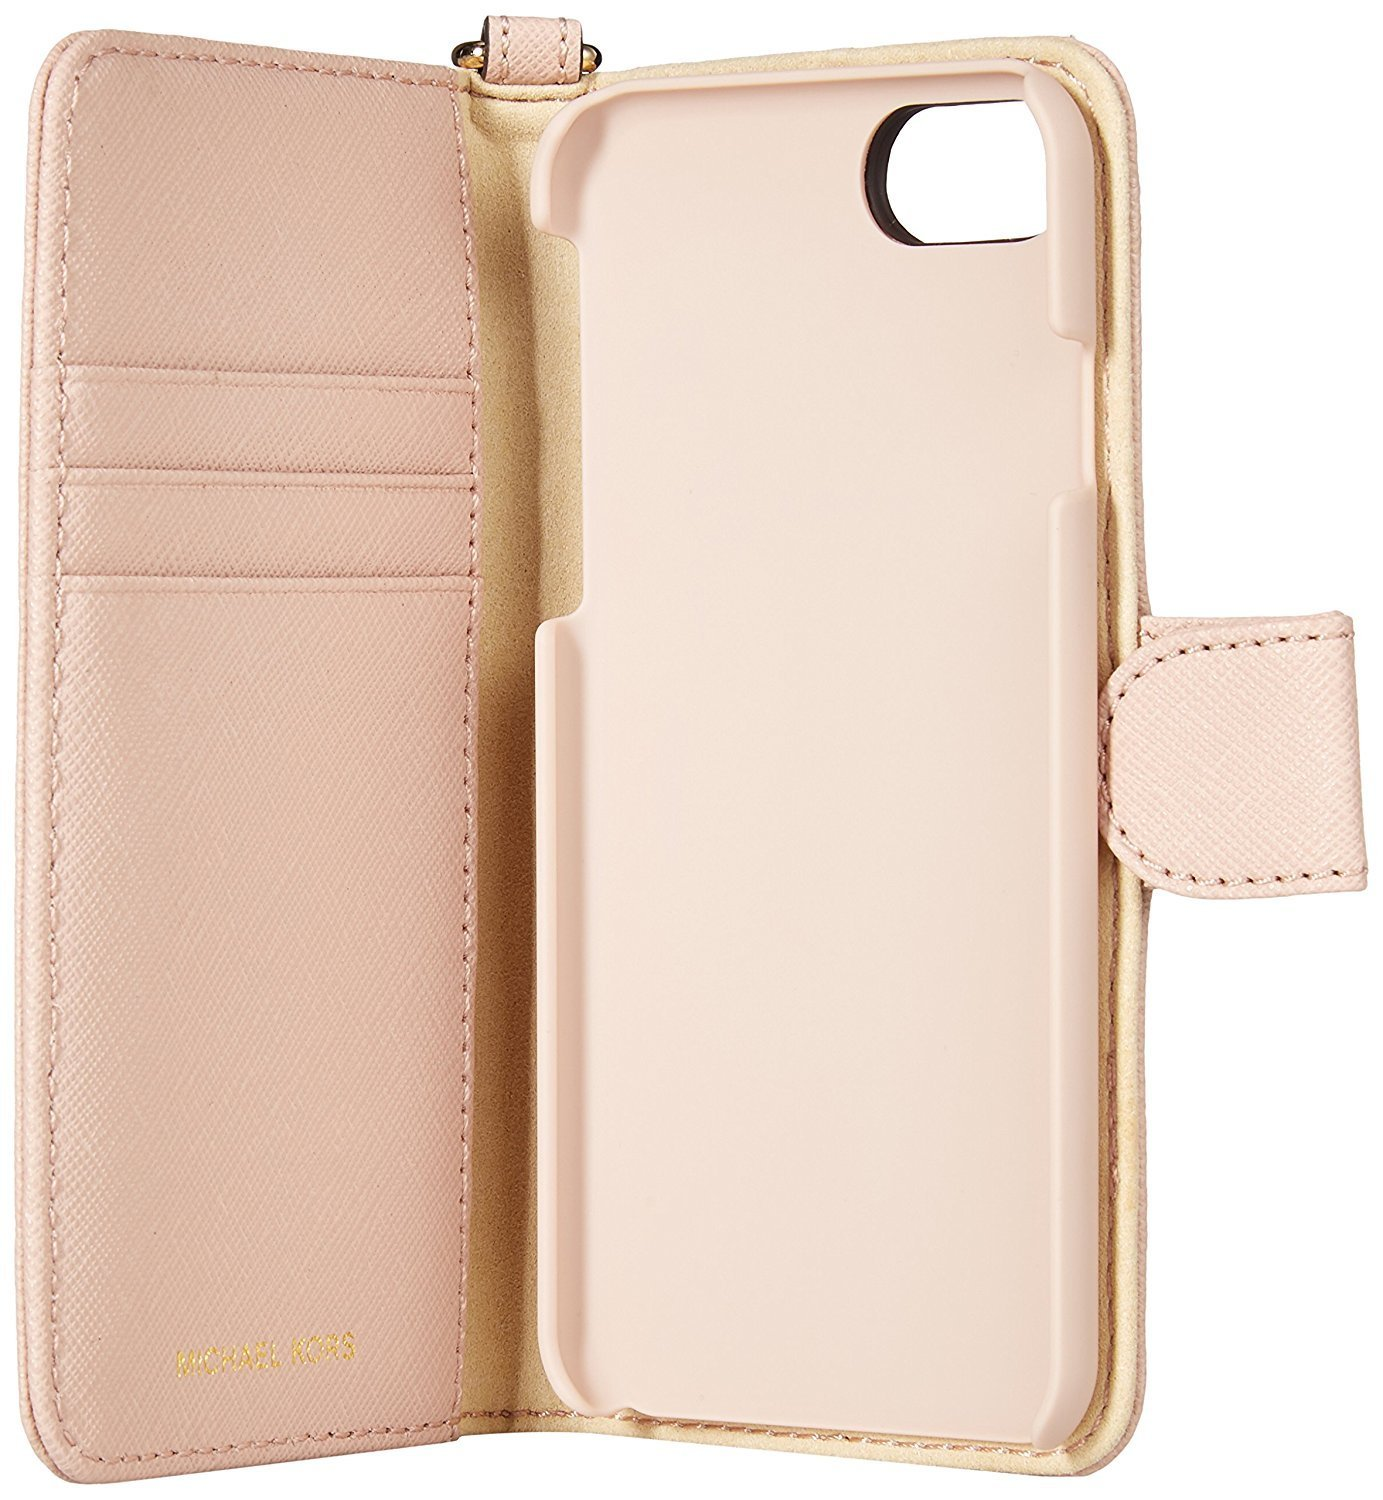 国内発 Michael Kors Folio Tab iPhone 7 Case